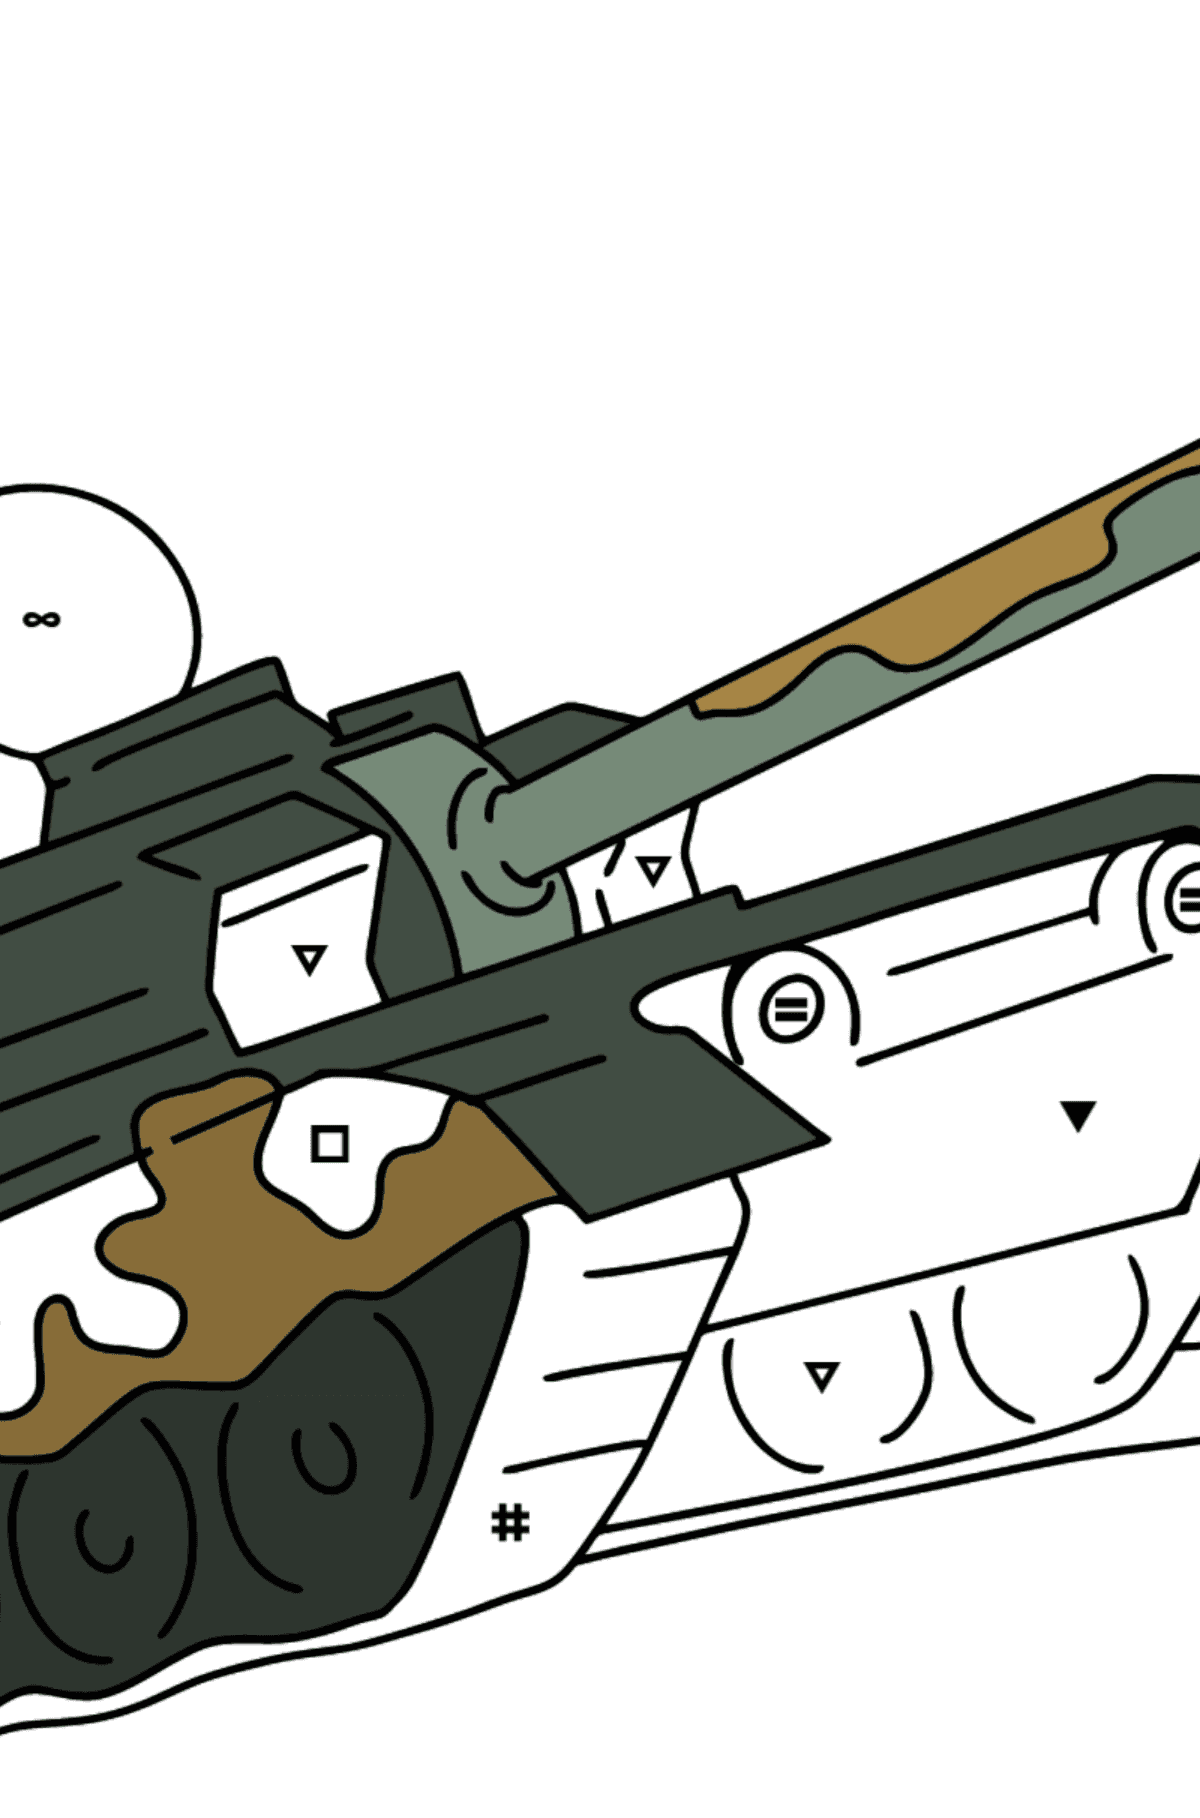 Military Tank coloring page - Coloring by Symbols for Kids